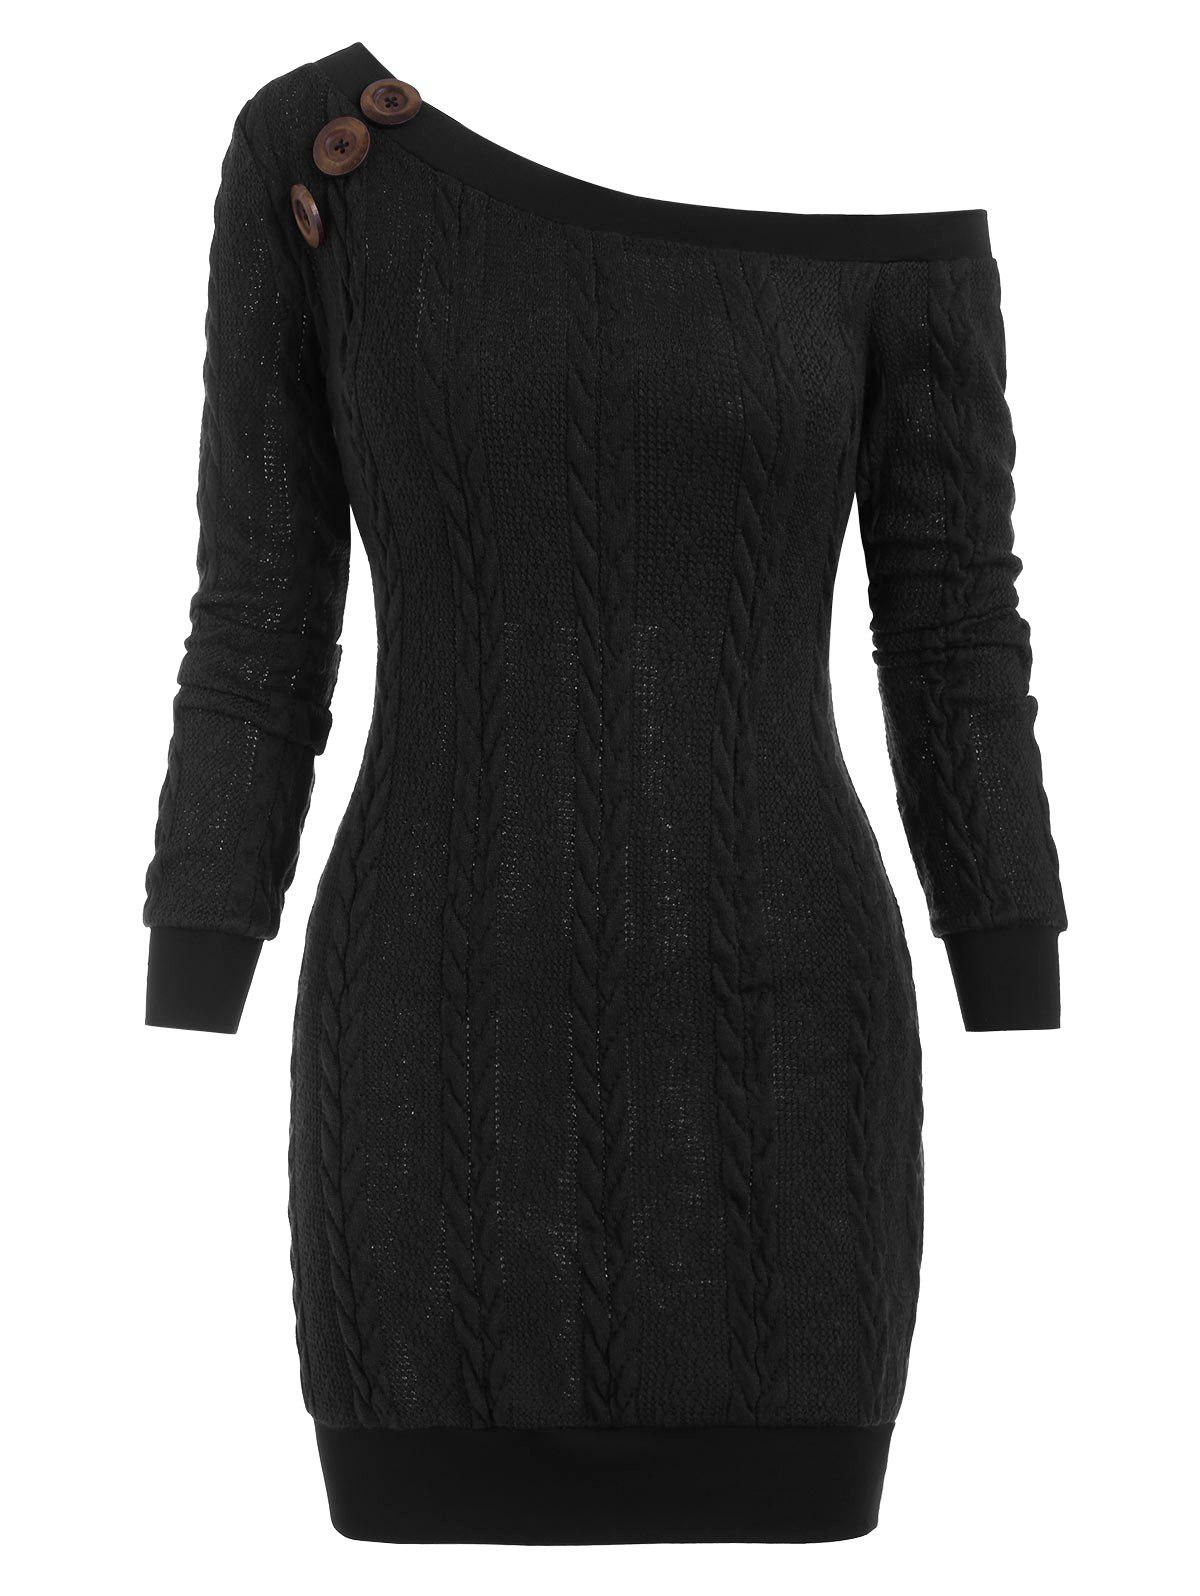 Skew Neck Cable Knit Mini Sweater Dress - BLACK S